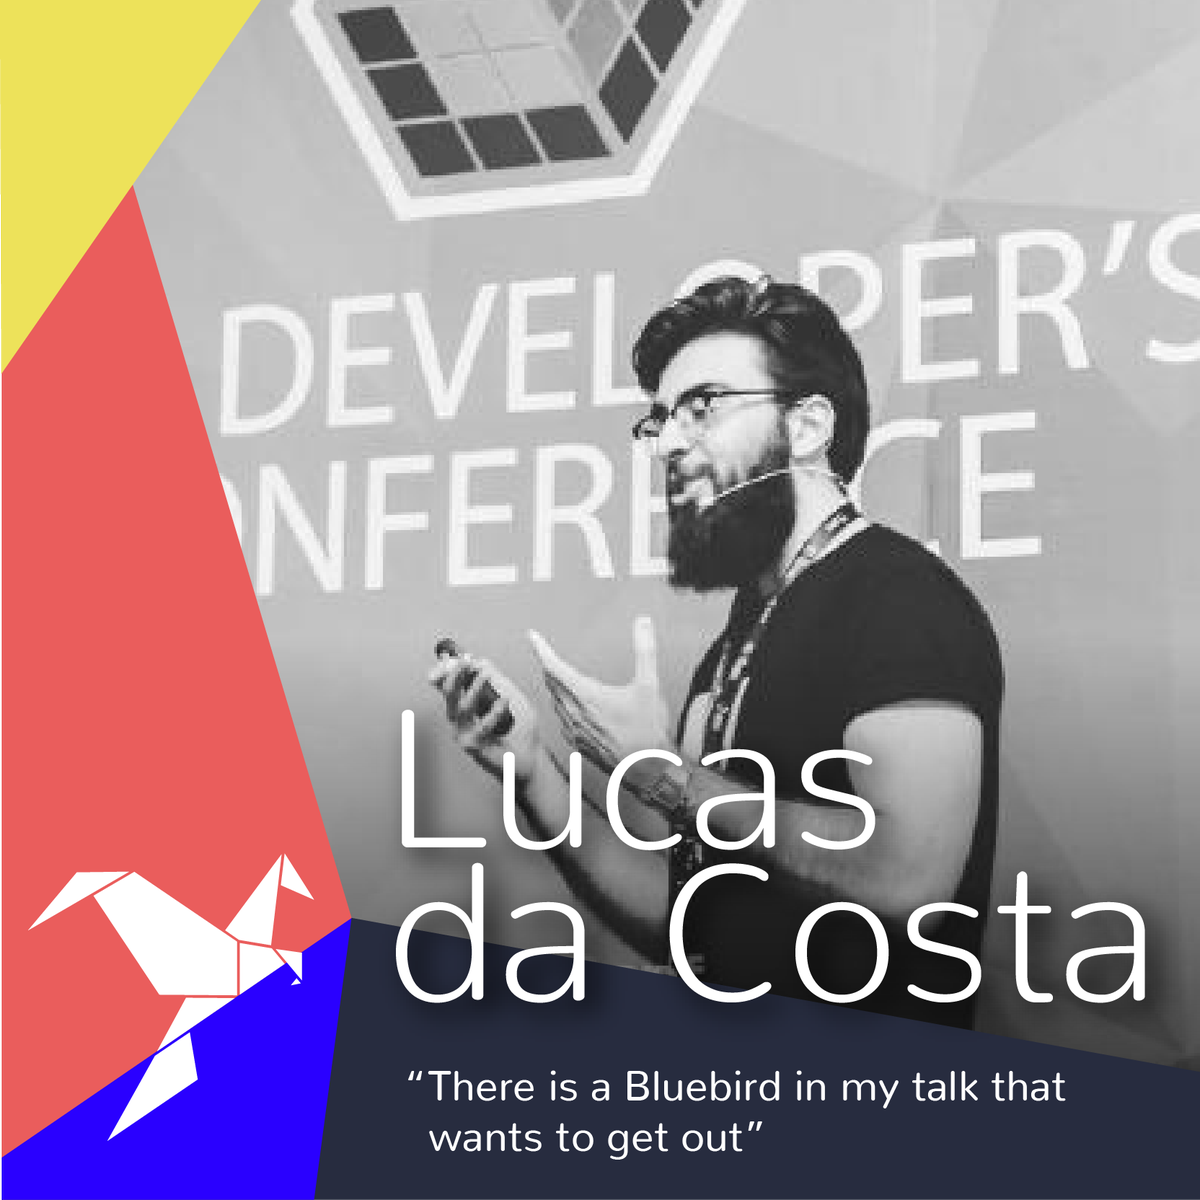 JSConf Colombia on Twitter: